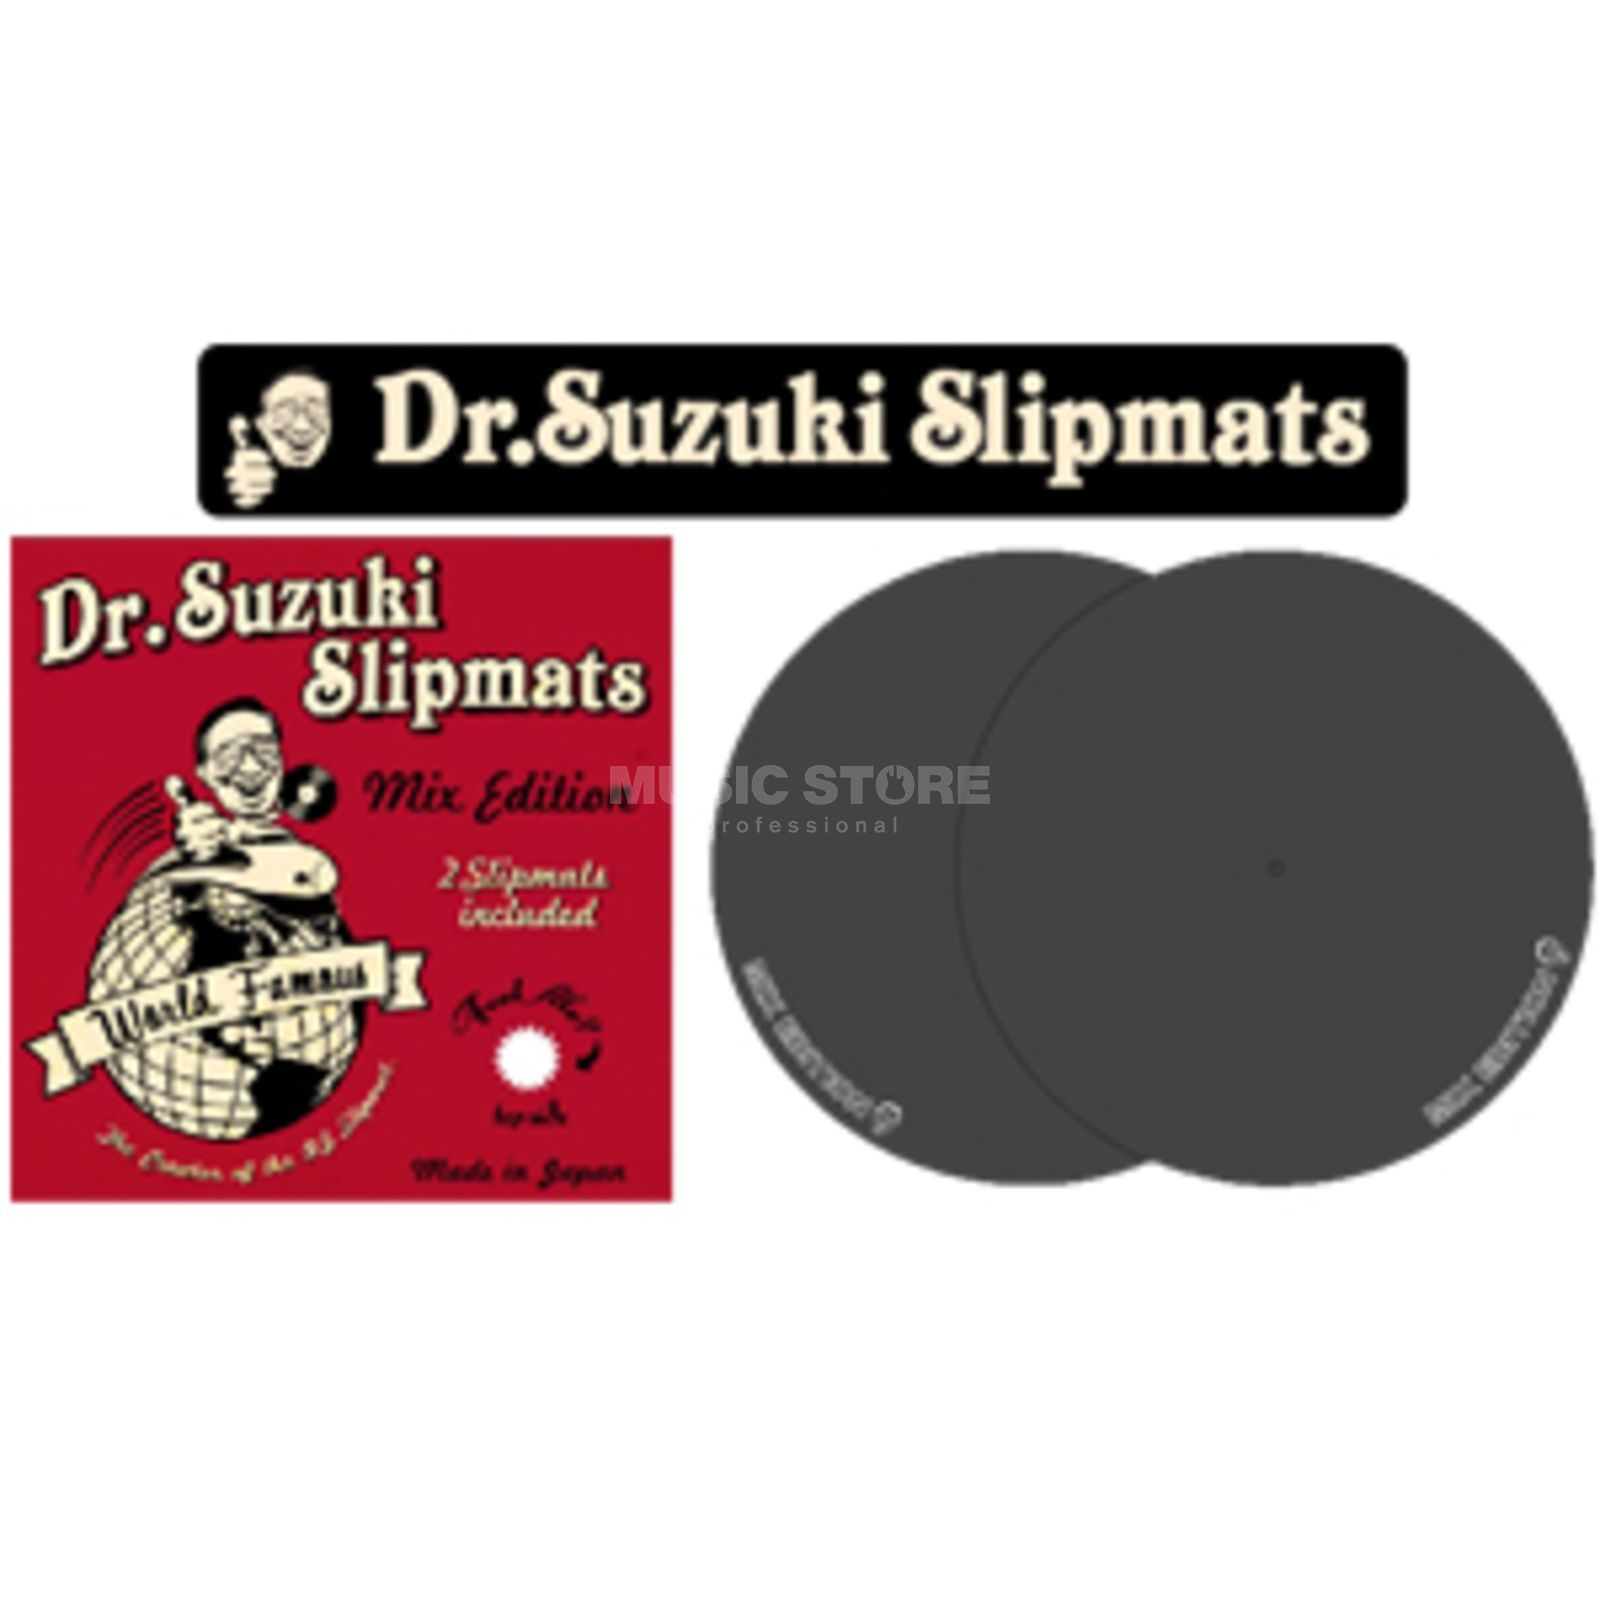 Tablecloth Dr.Suzuki Mix Edition Slipmats black (paire) Image du produit